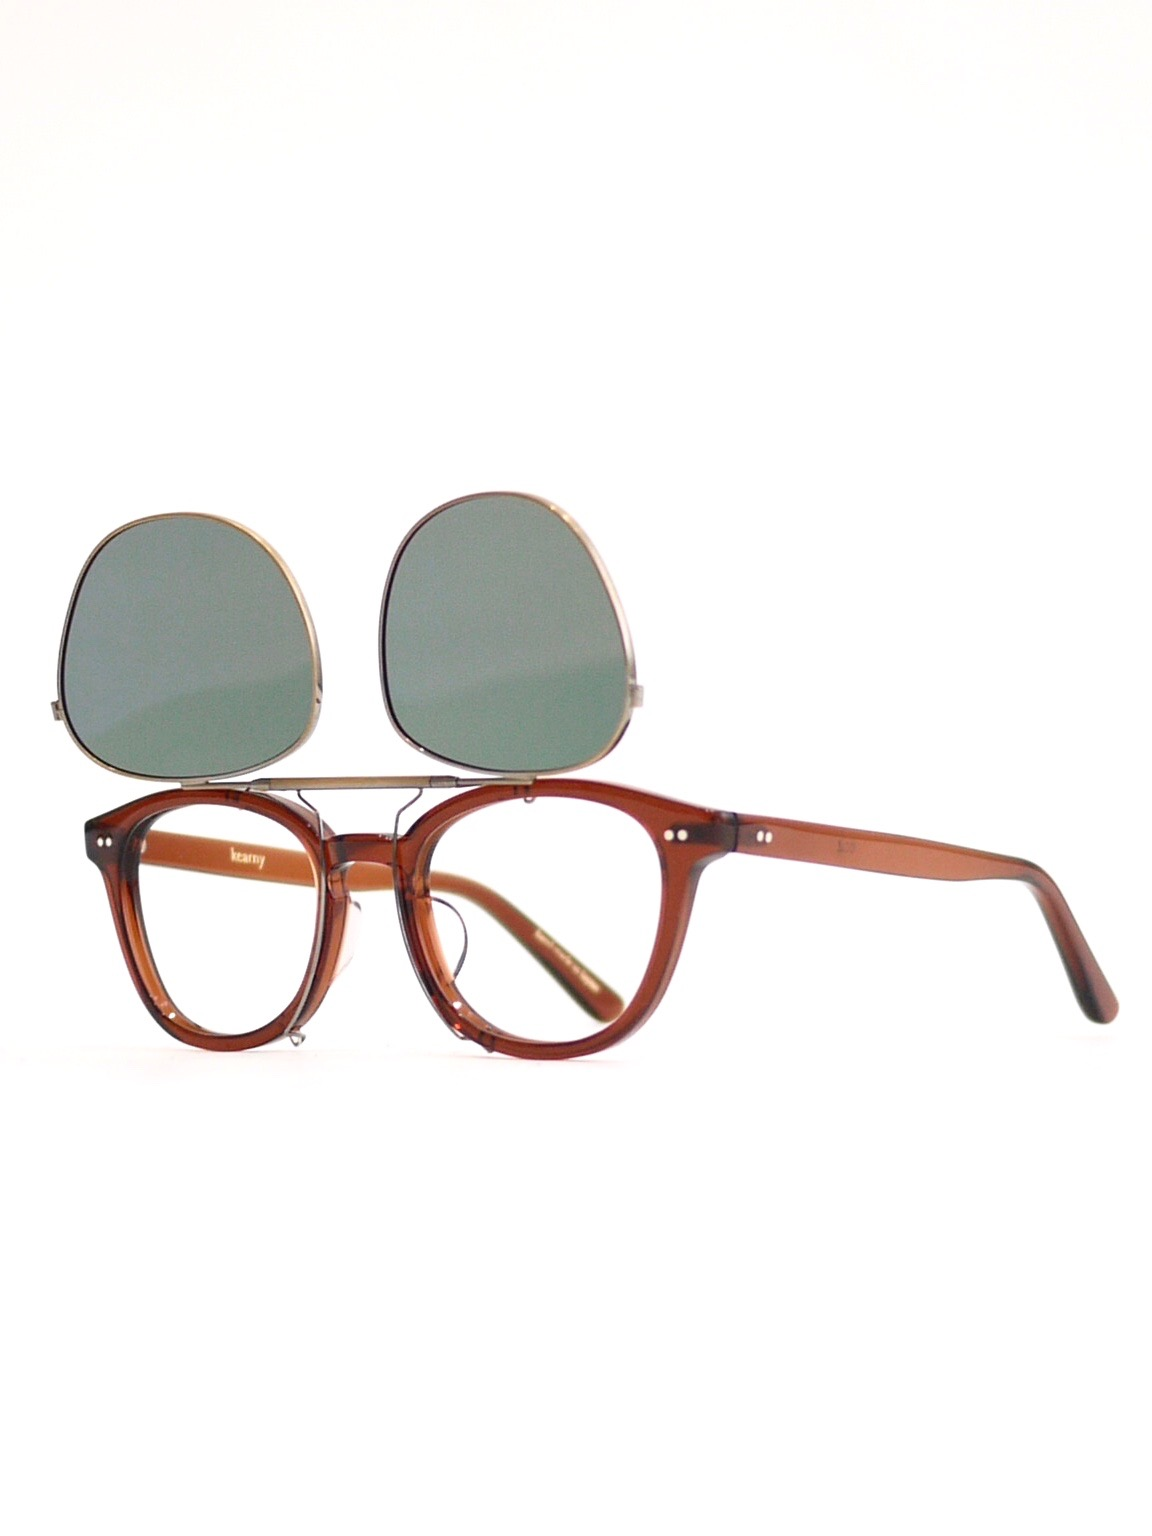 kearny / clip on (dark green lens)